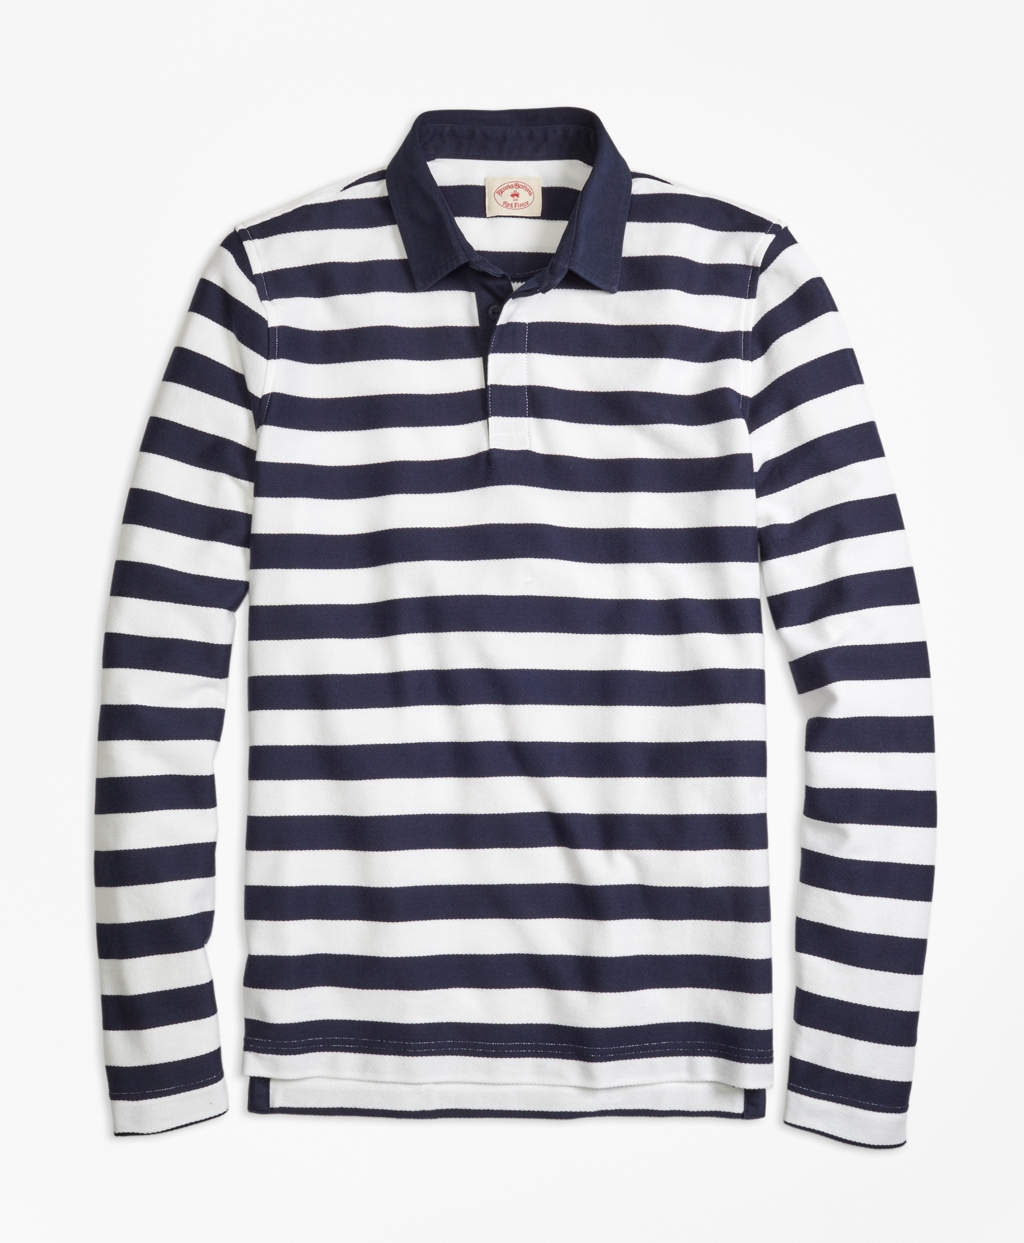 Brooks brothers long sleeve striped rugby shirt in blue for Long sleeve striped rugby shirt